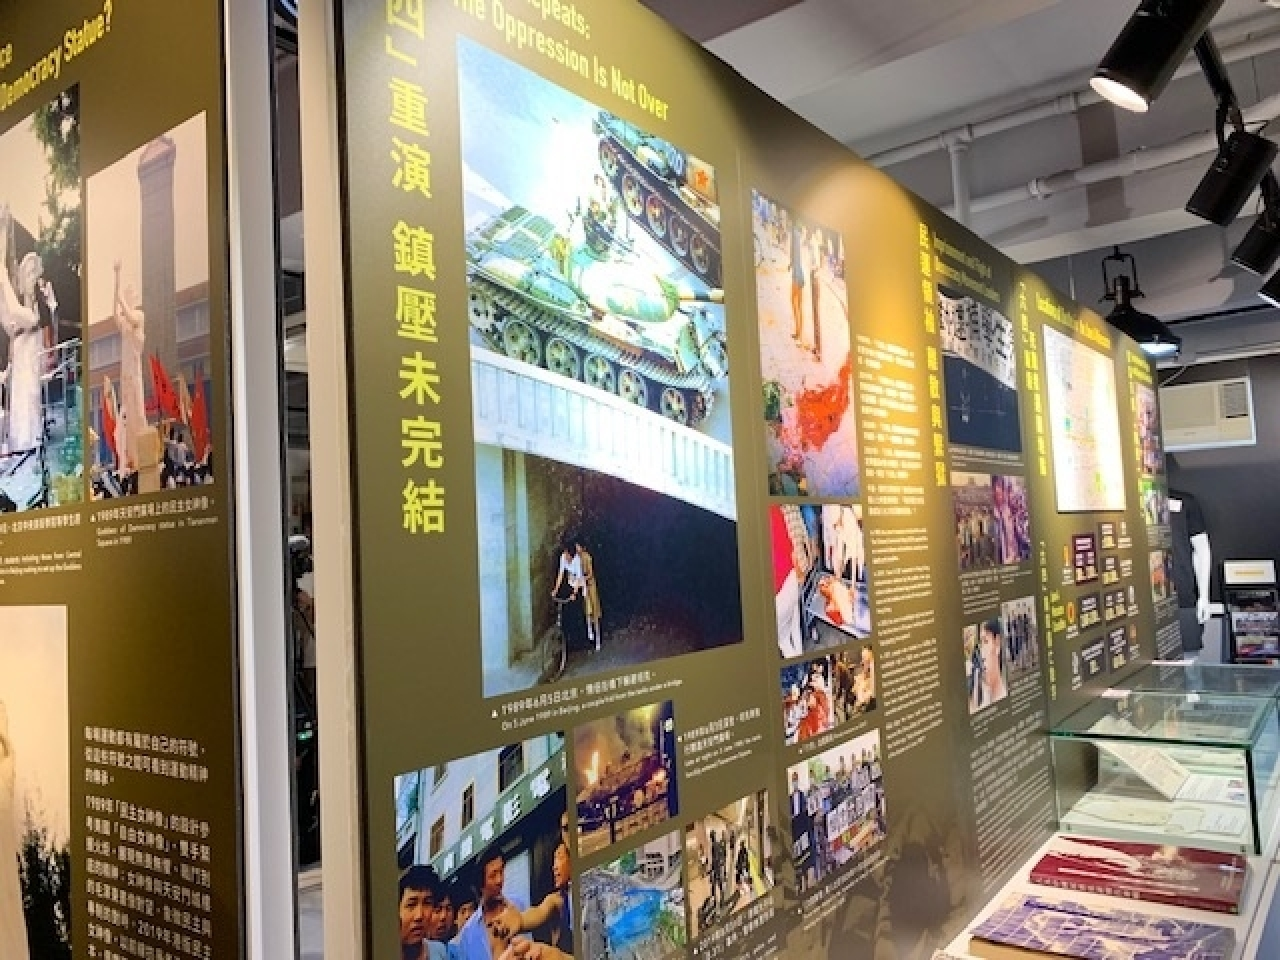 The exhibition features photos from the 1989 student movement in Beijing, as well as the role of Hong Kong at the time. Photo: RTHK